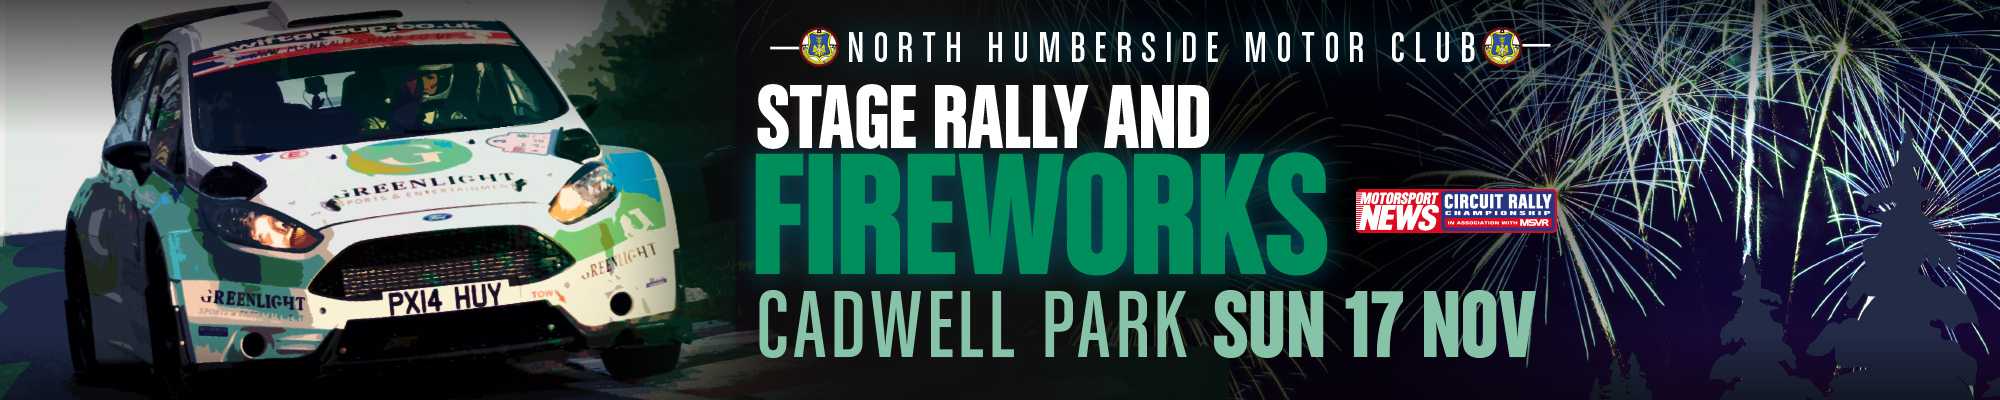 Stage Rally and Fireworks